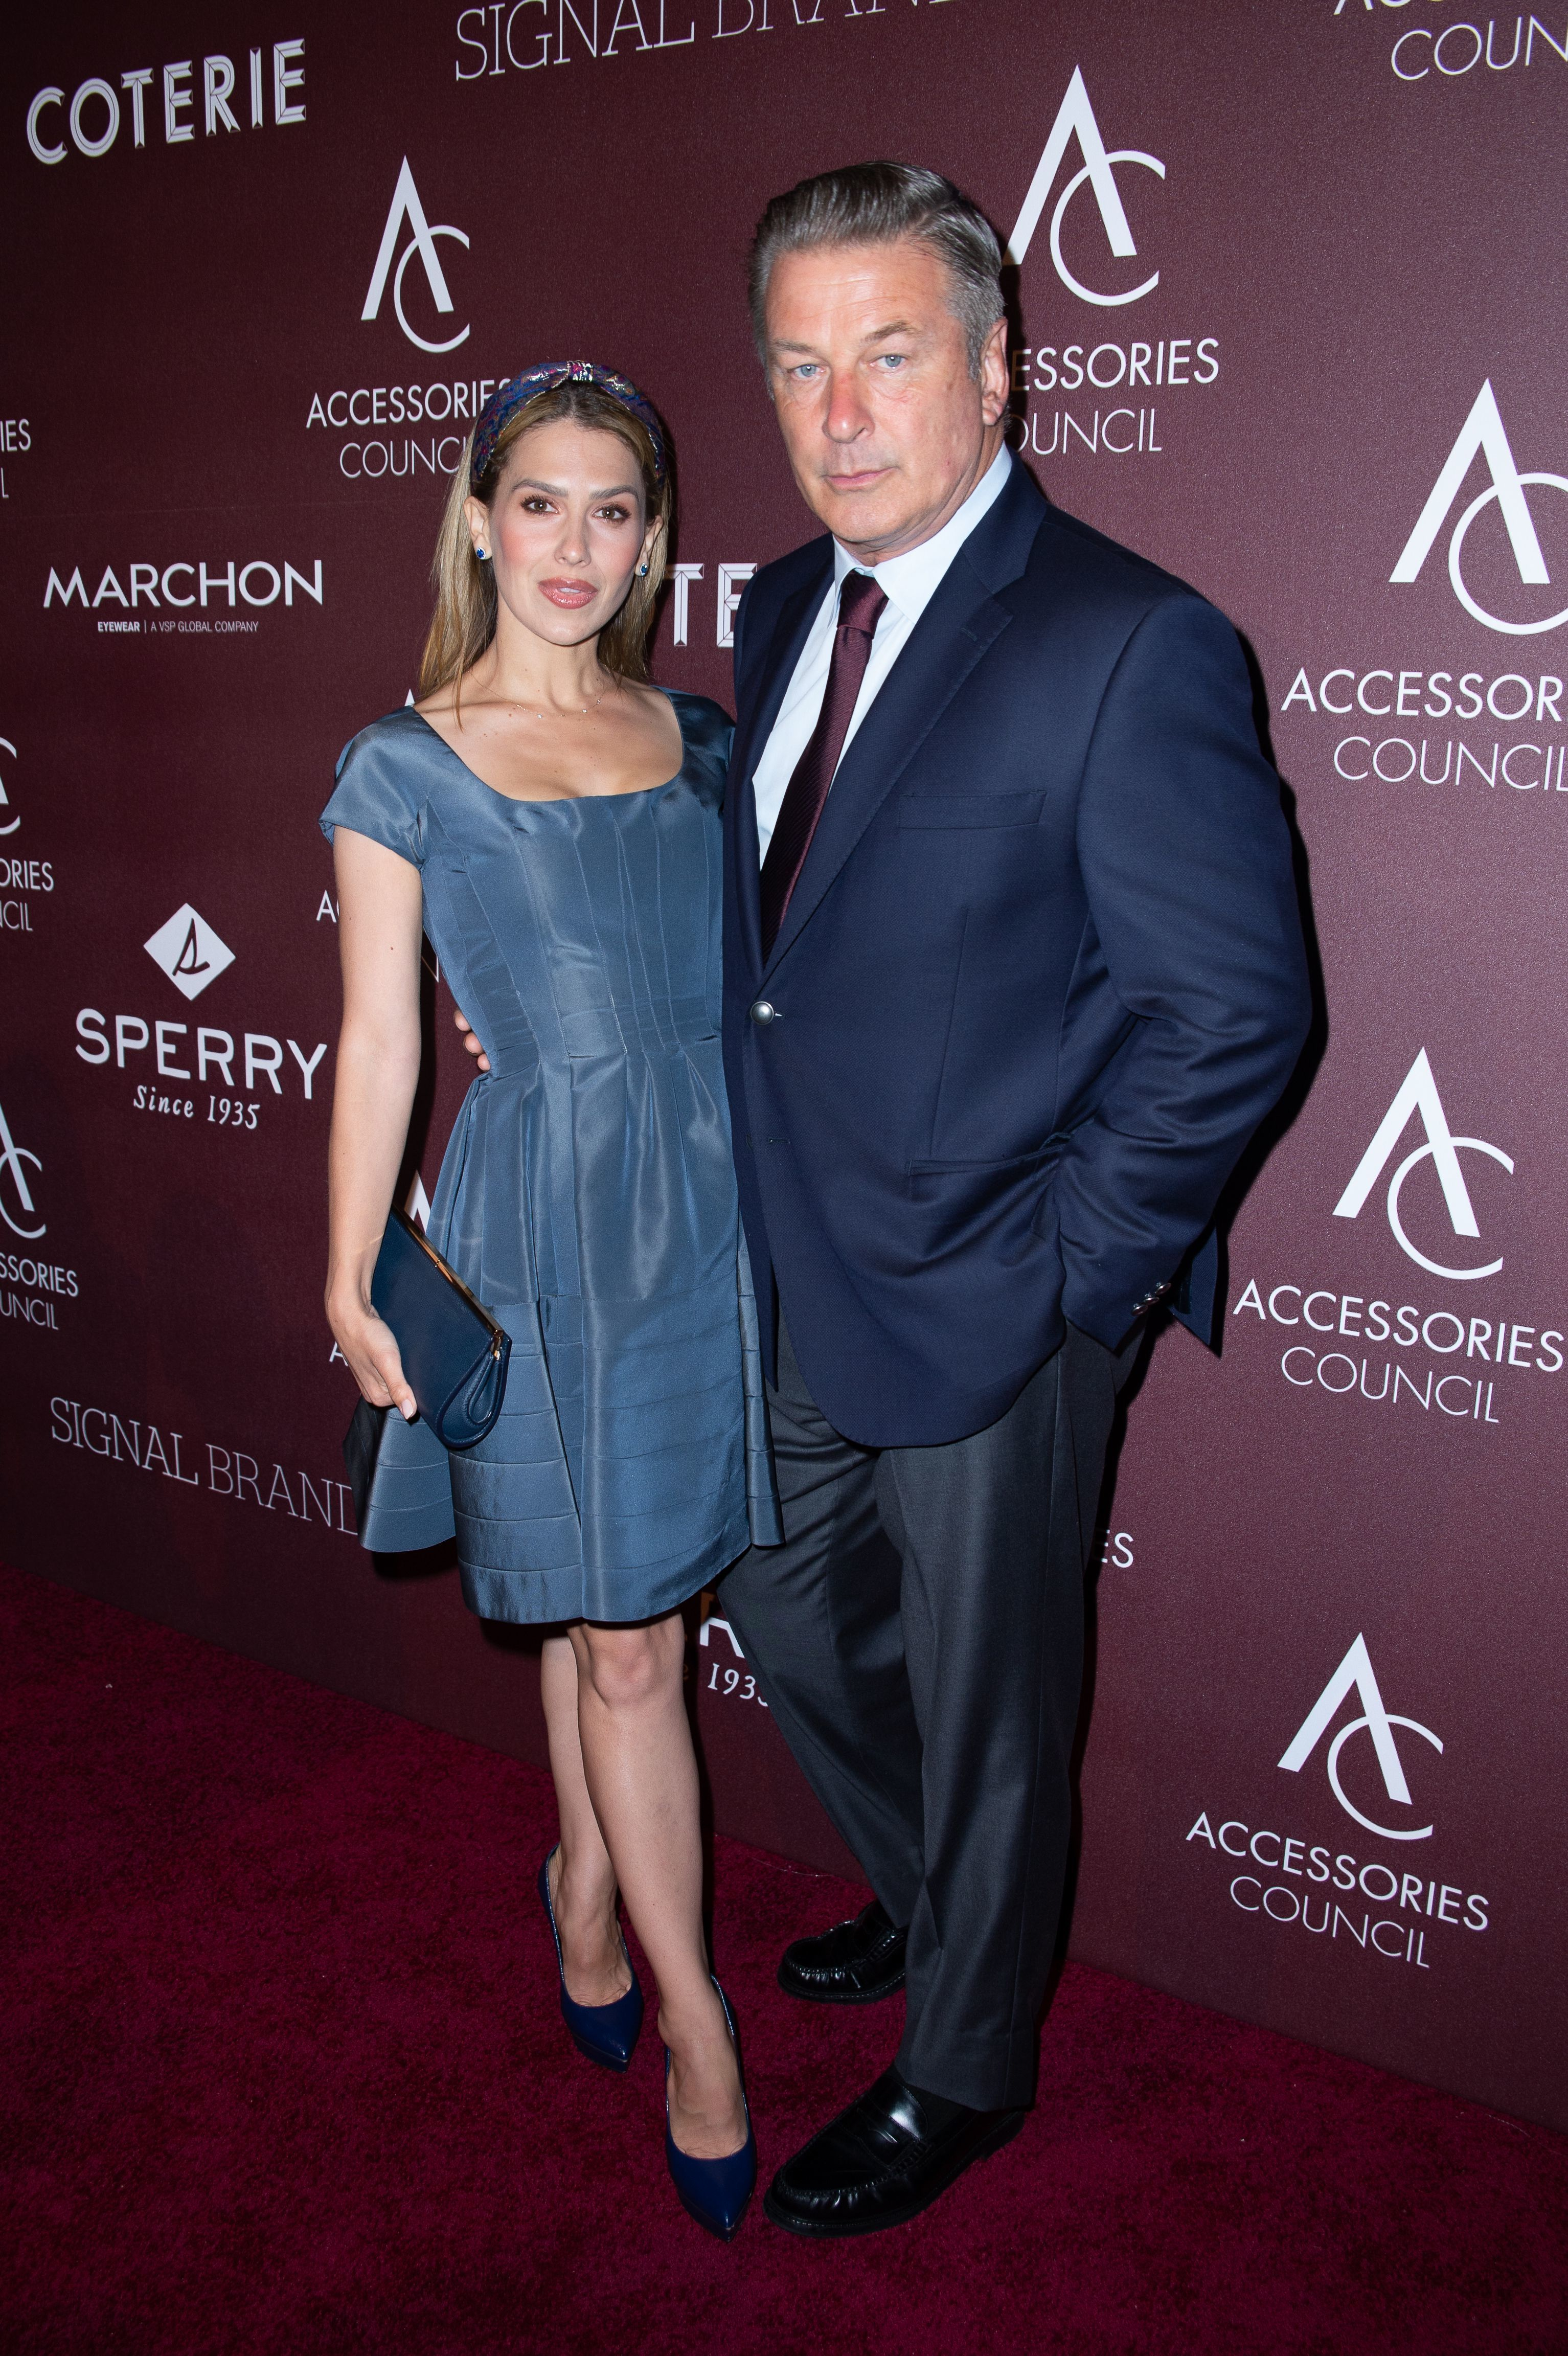 Hilaria Baldwin and Alec Baldwin attend the 23rd Annual Ace Awards in New York City on June 10, 2019.